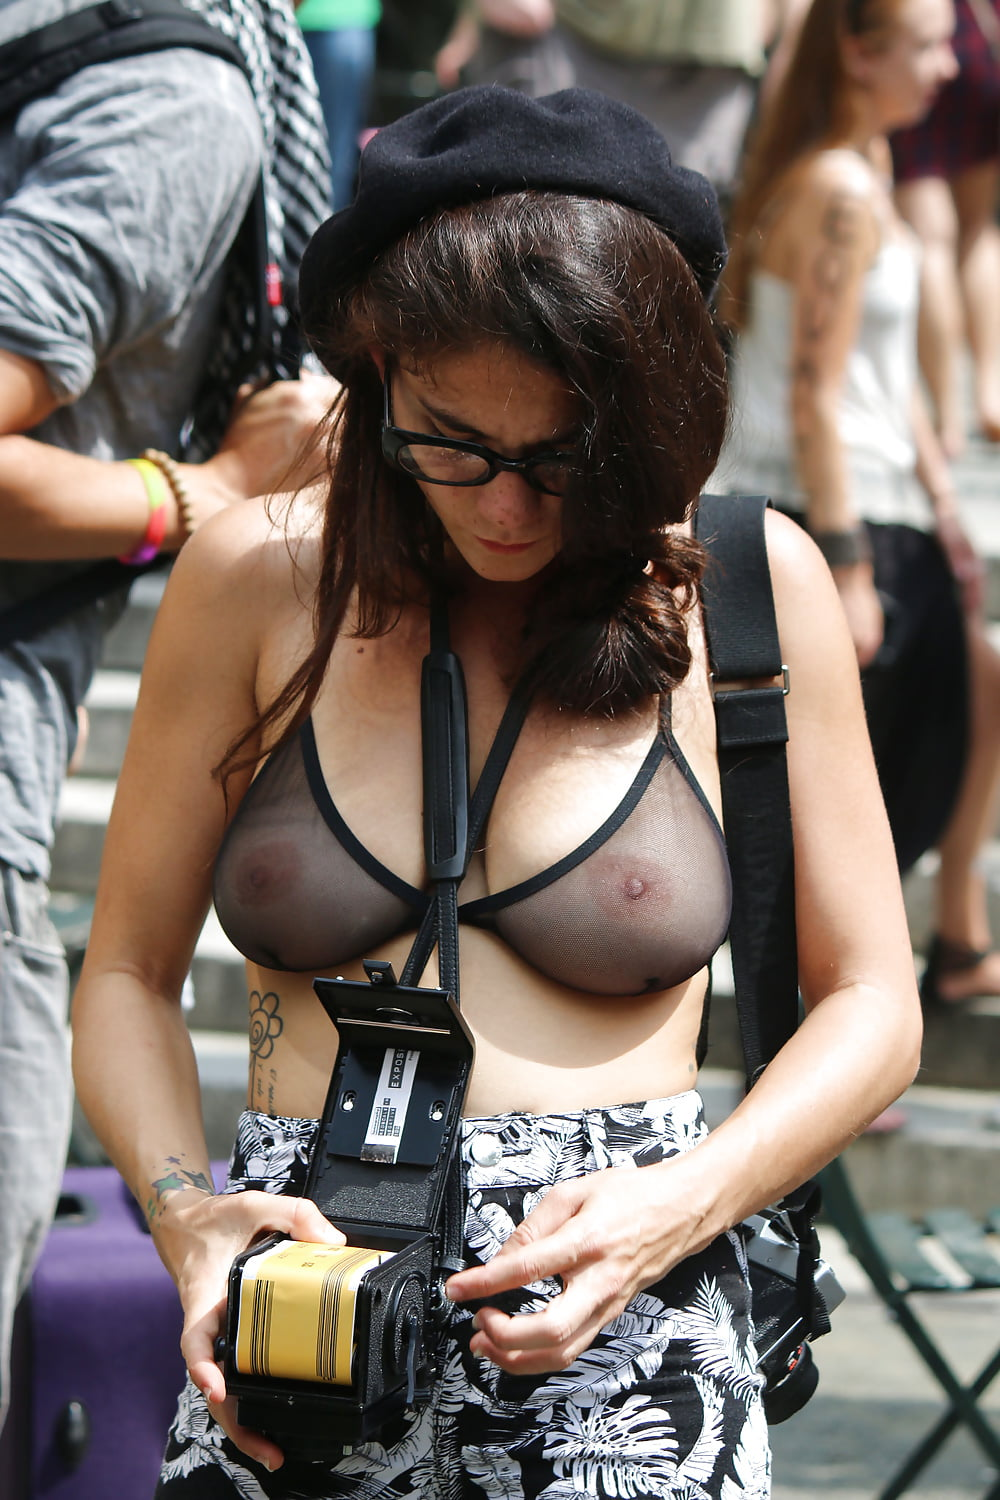 hoyts-nigerian-candid-boob-picturetures-young-nude-sex